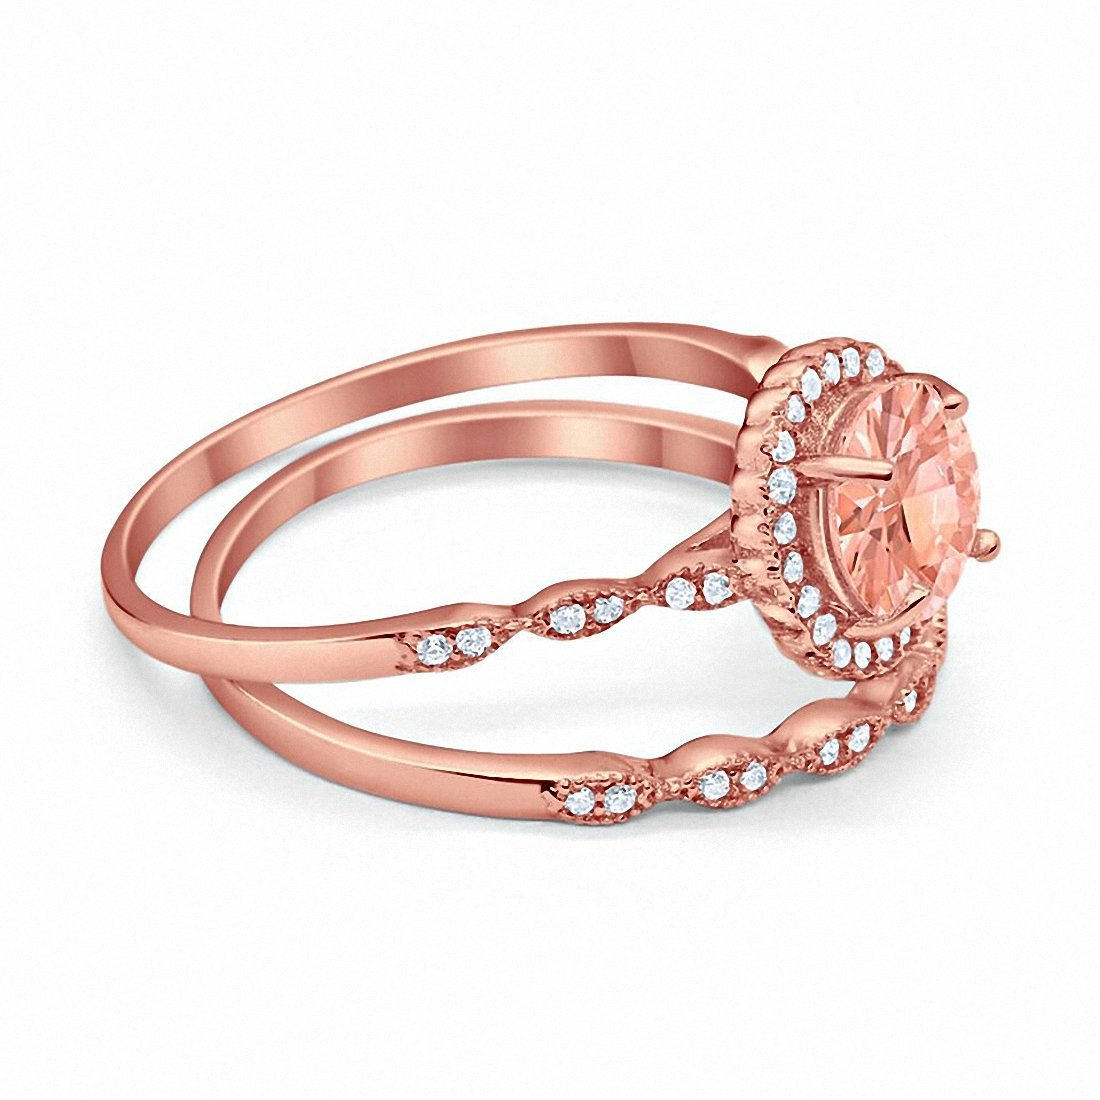 Two Piece Engagement Ring Rose Tone, Simulated Morganite CZ 925 Sterling Silver